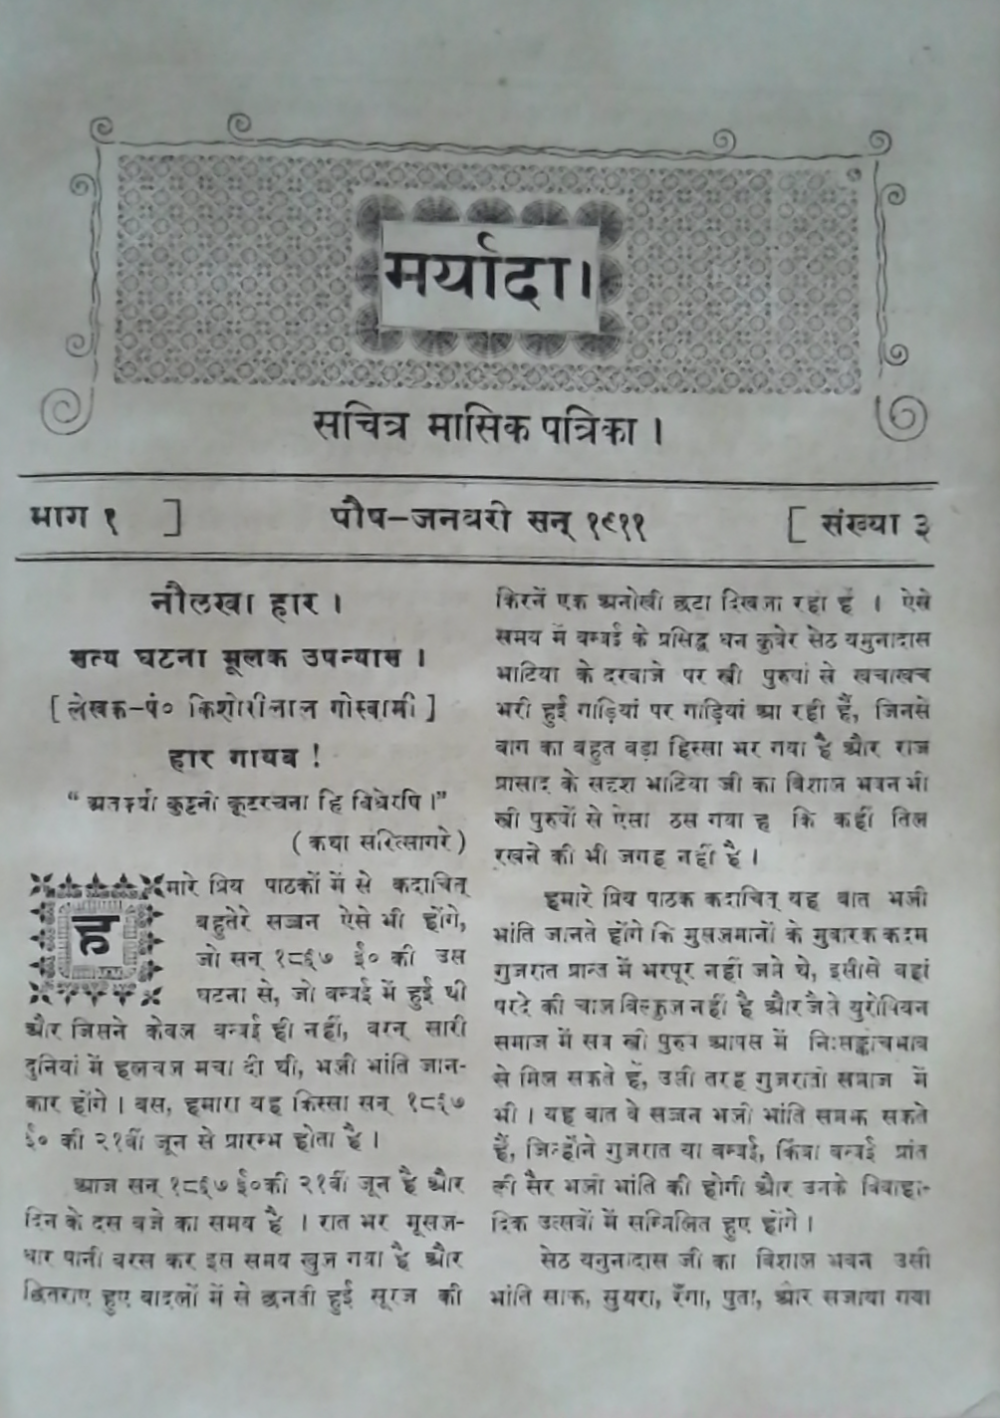 Fig. 1: First page of Naulakha Haar, one of Goswami's novellas, which was serialised in 'Maryada', a major Hindi monthly published from Allahabad. This novel uses elements of both detective and historical.